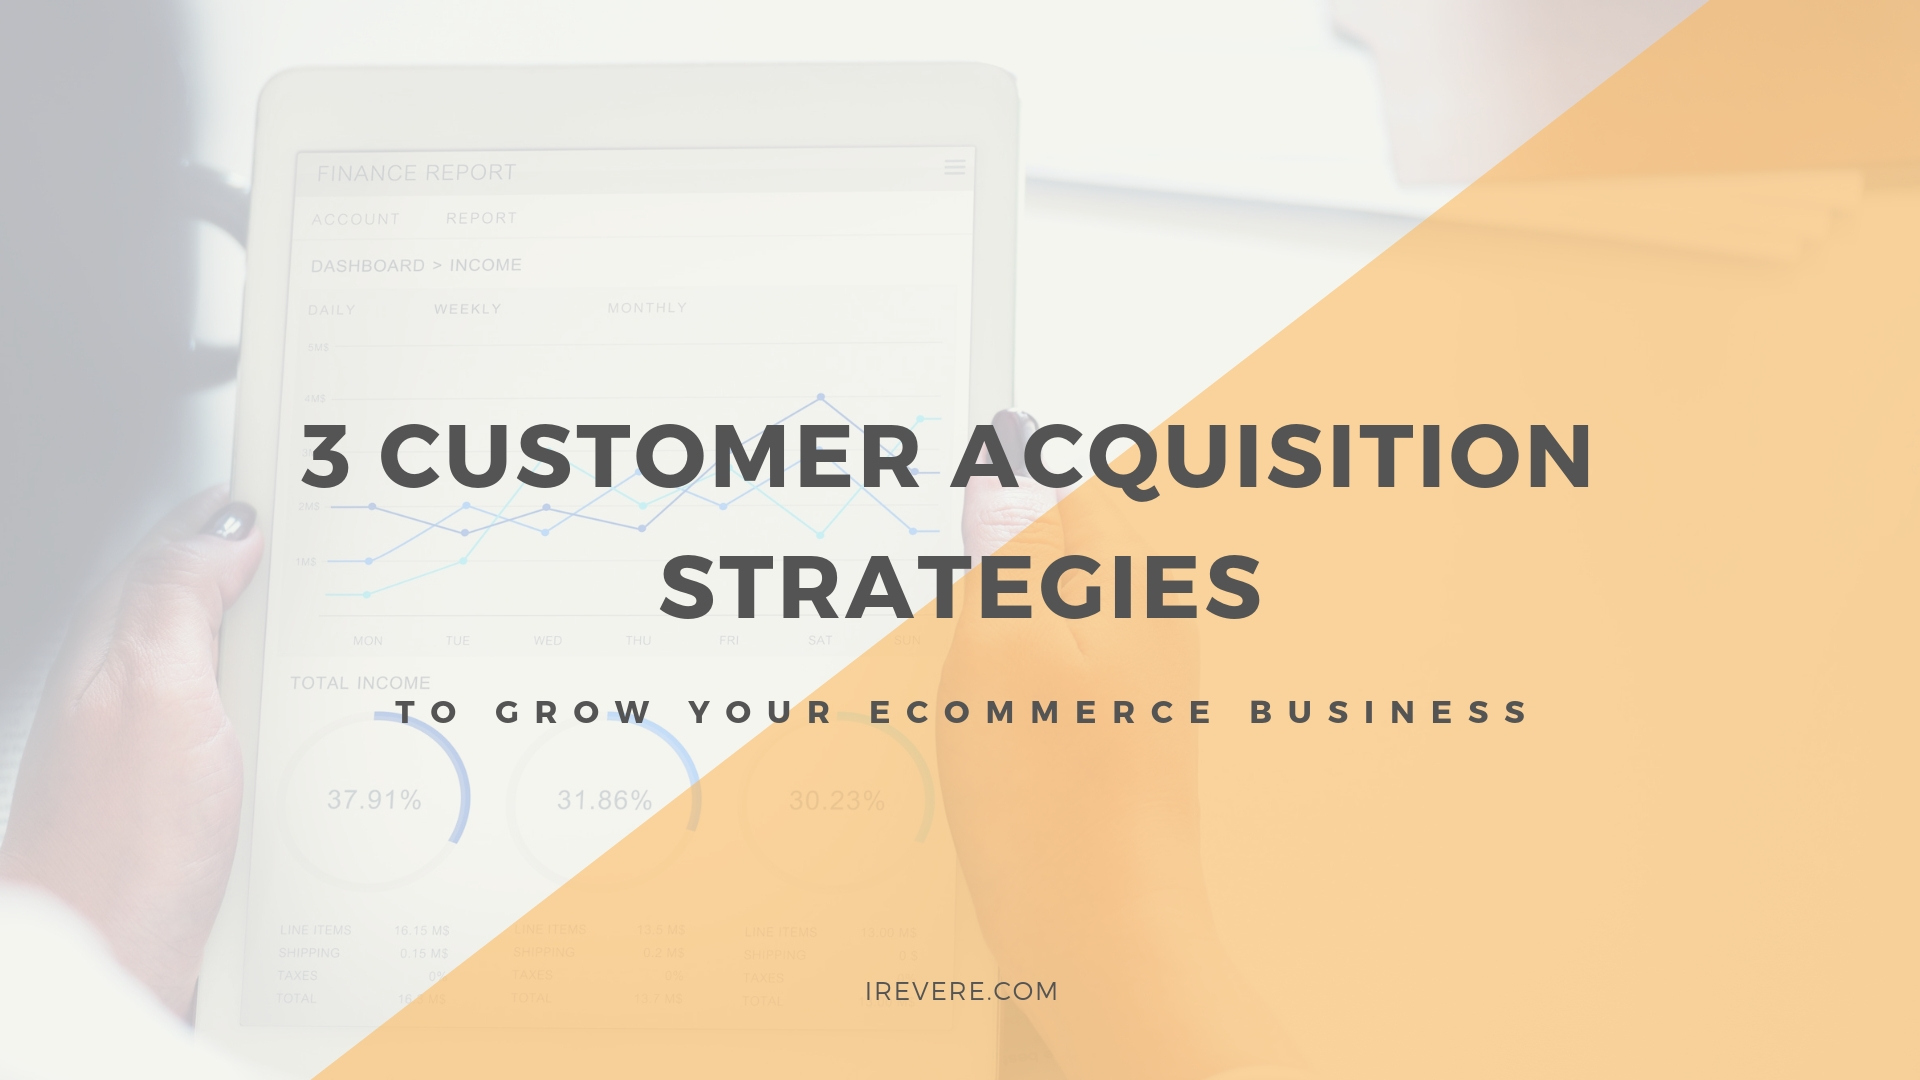 3 Customer Acquisition Strategies to Grow Your eCommerce Business